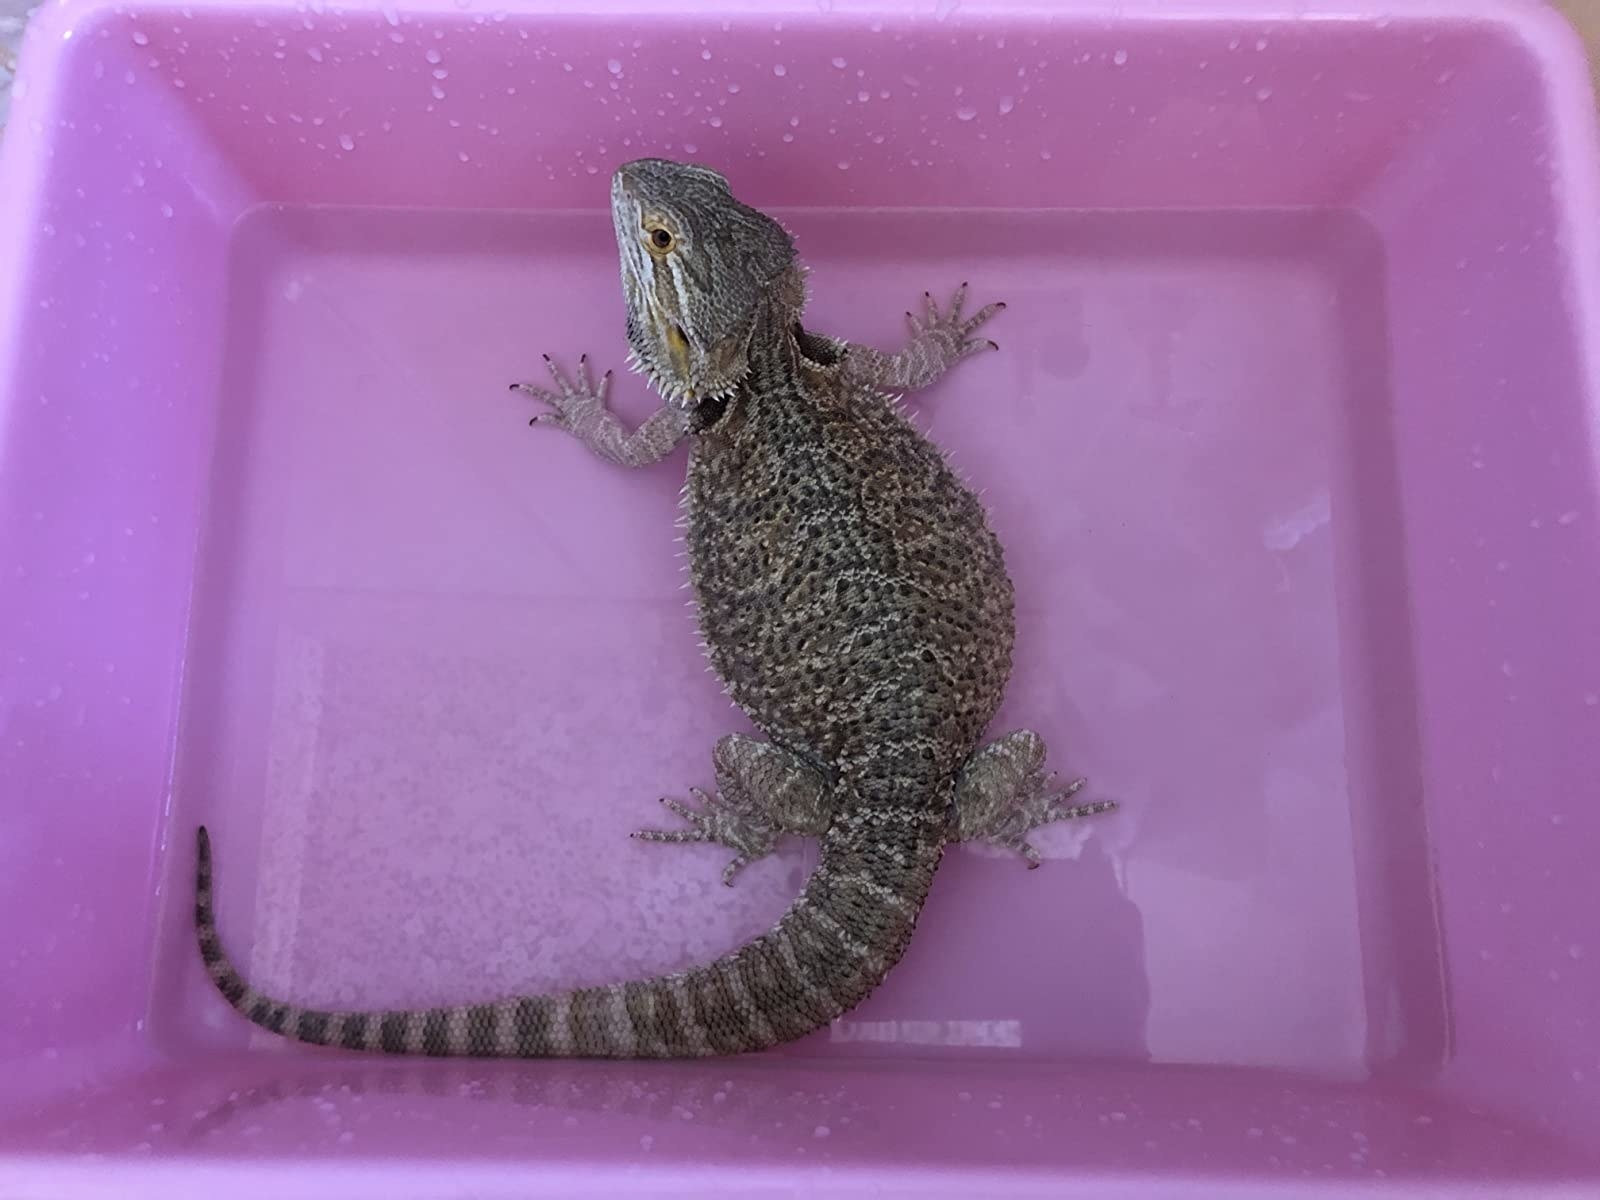 A reptile being bathed in the product